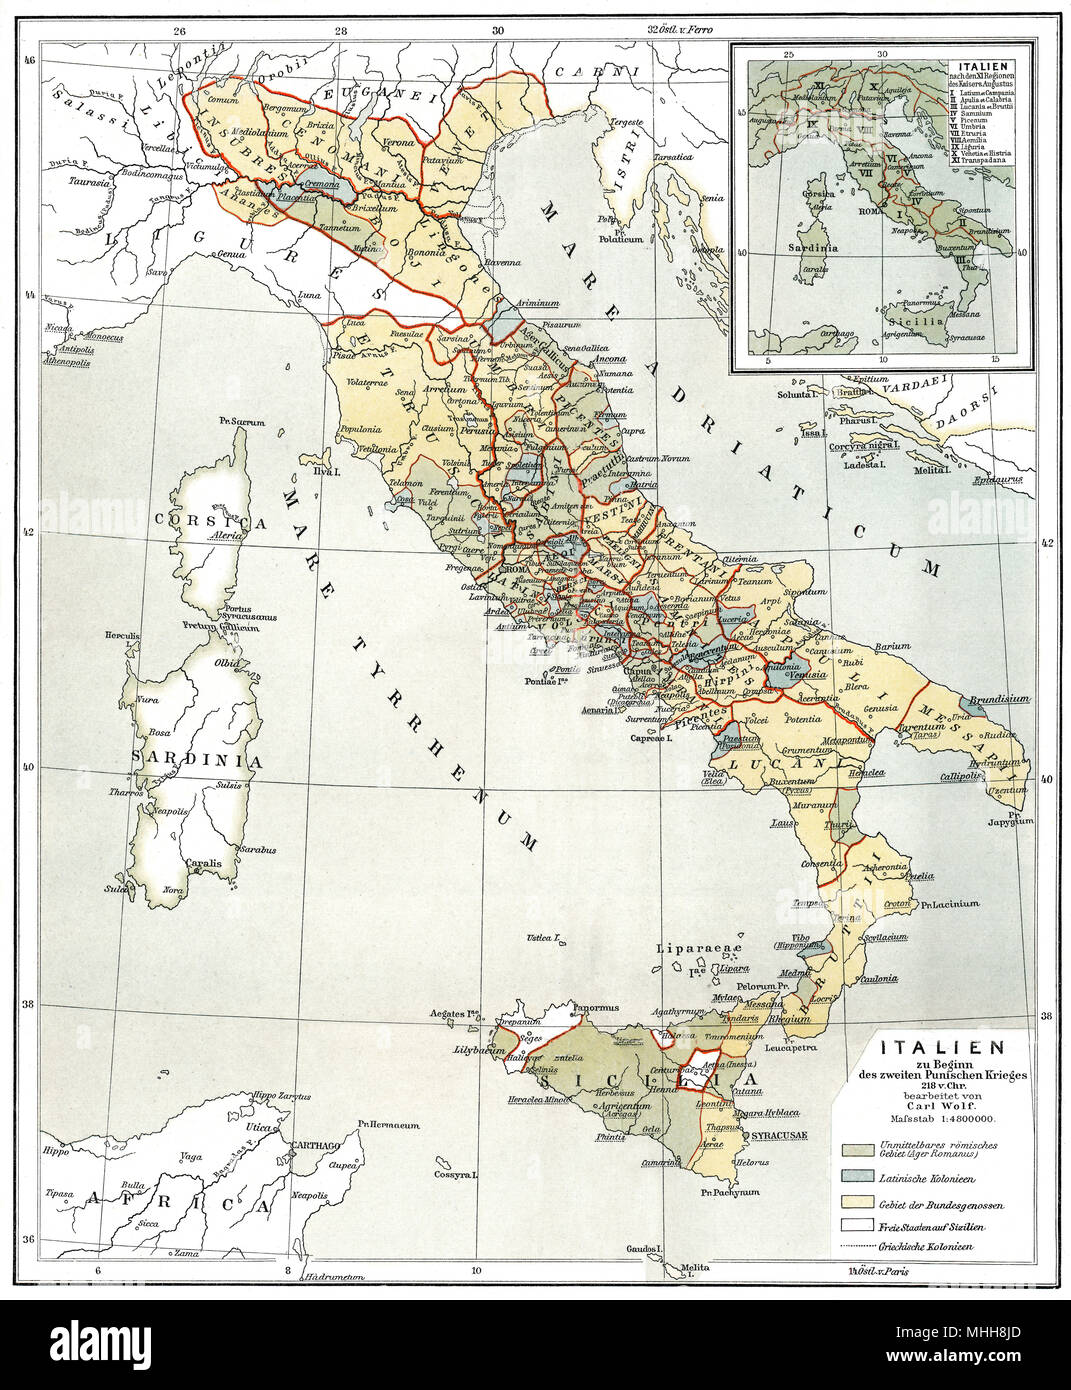 Historical map of Ancient Italy, c. 218 BC - Stock Image